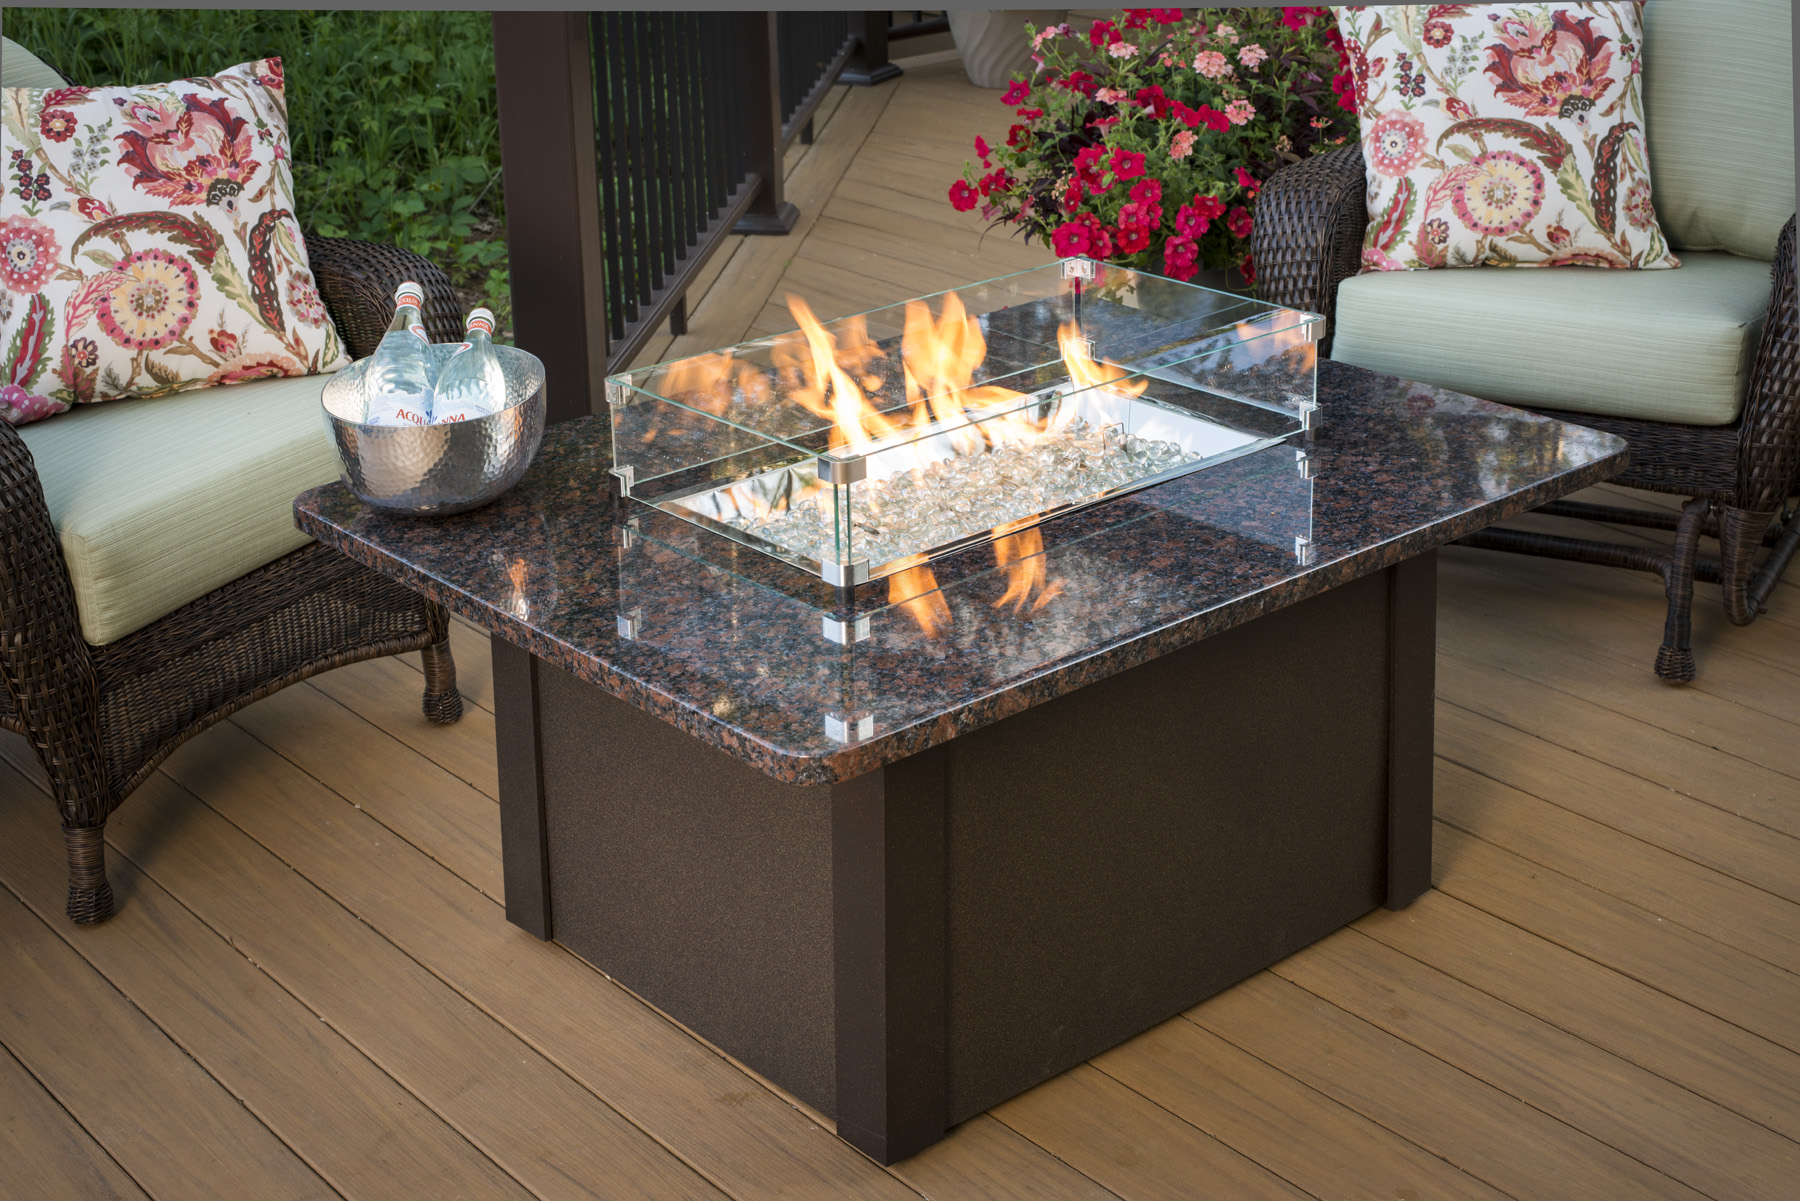 Superbe DIY Outdoor Fire Pit Table